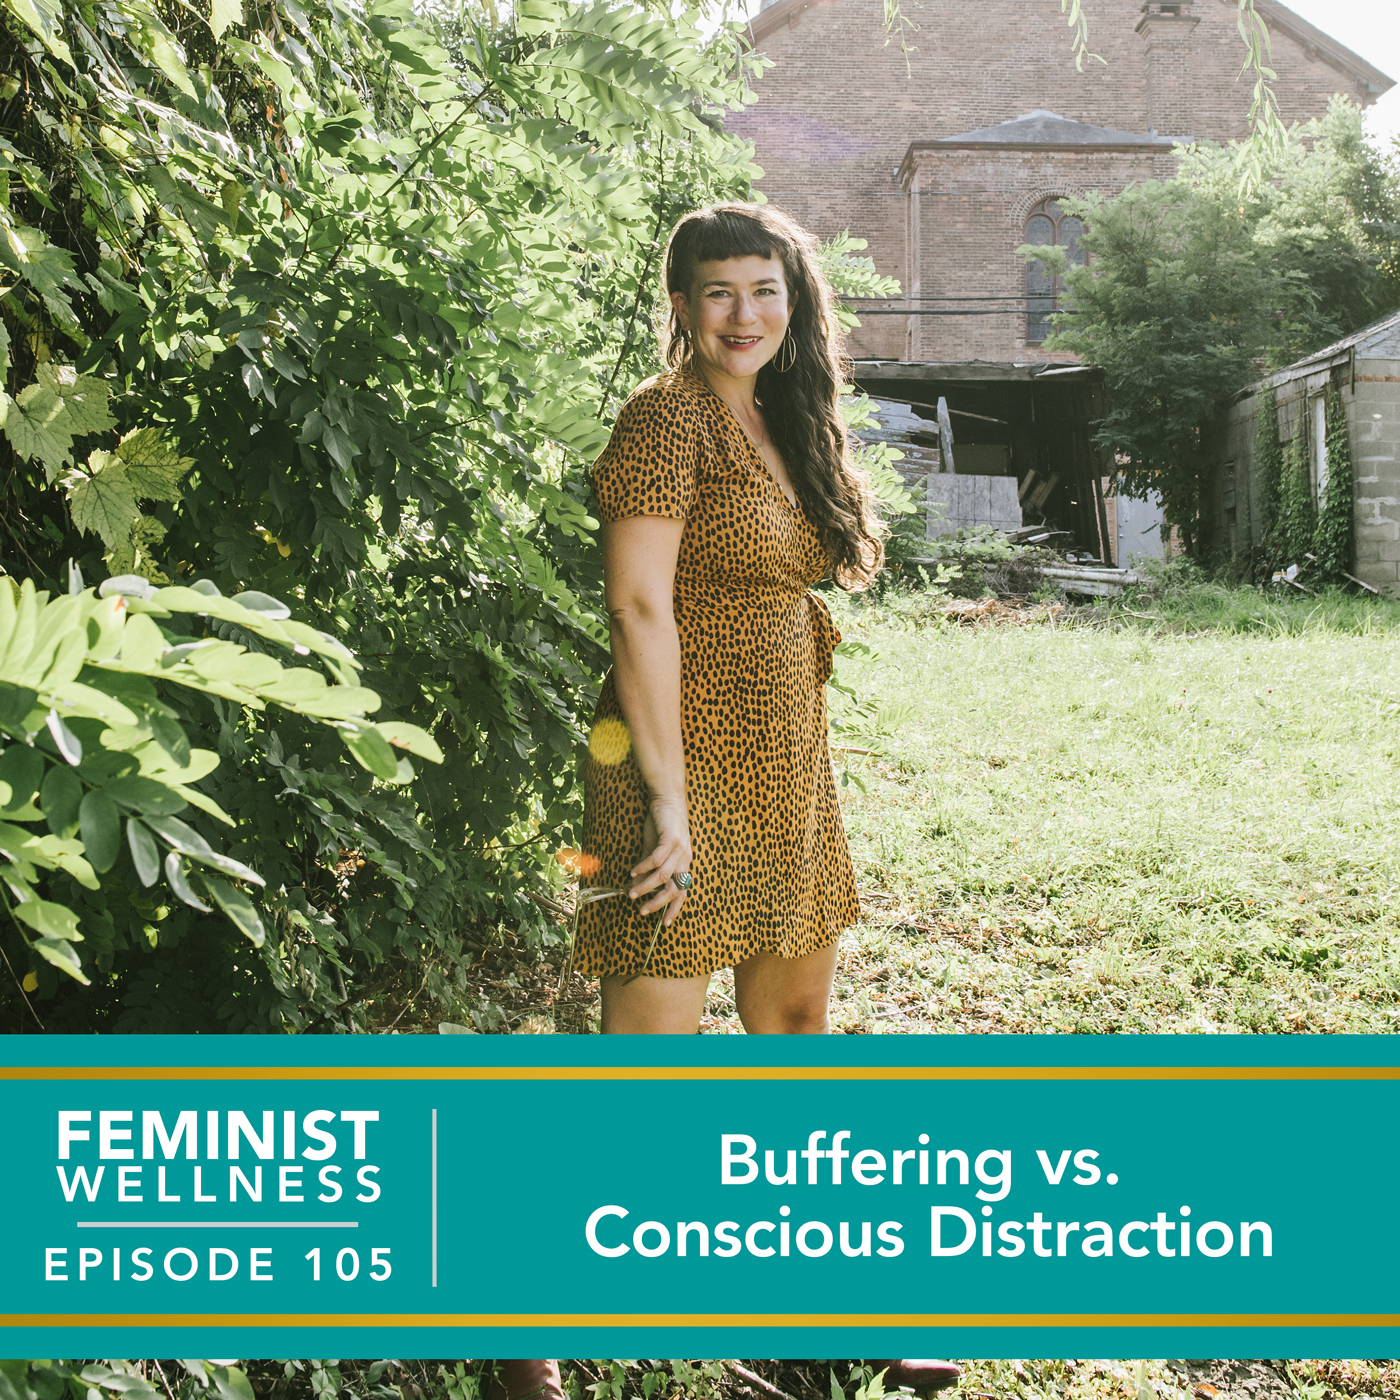 Buffering vs. Conscious Distraction